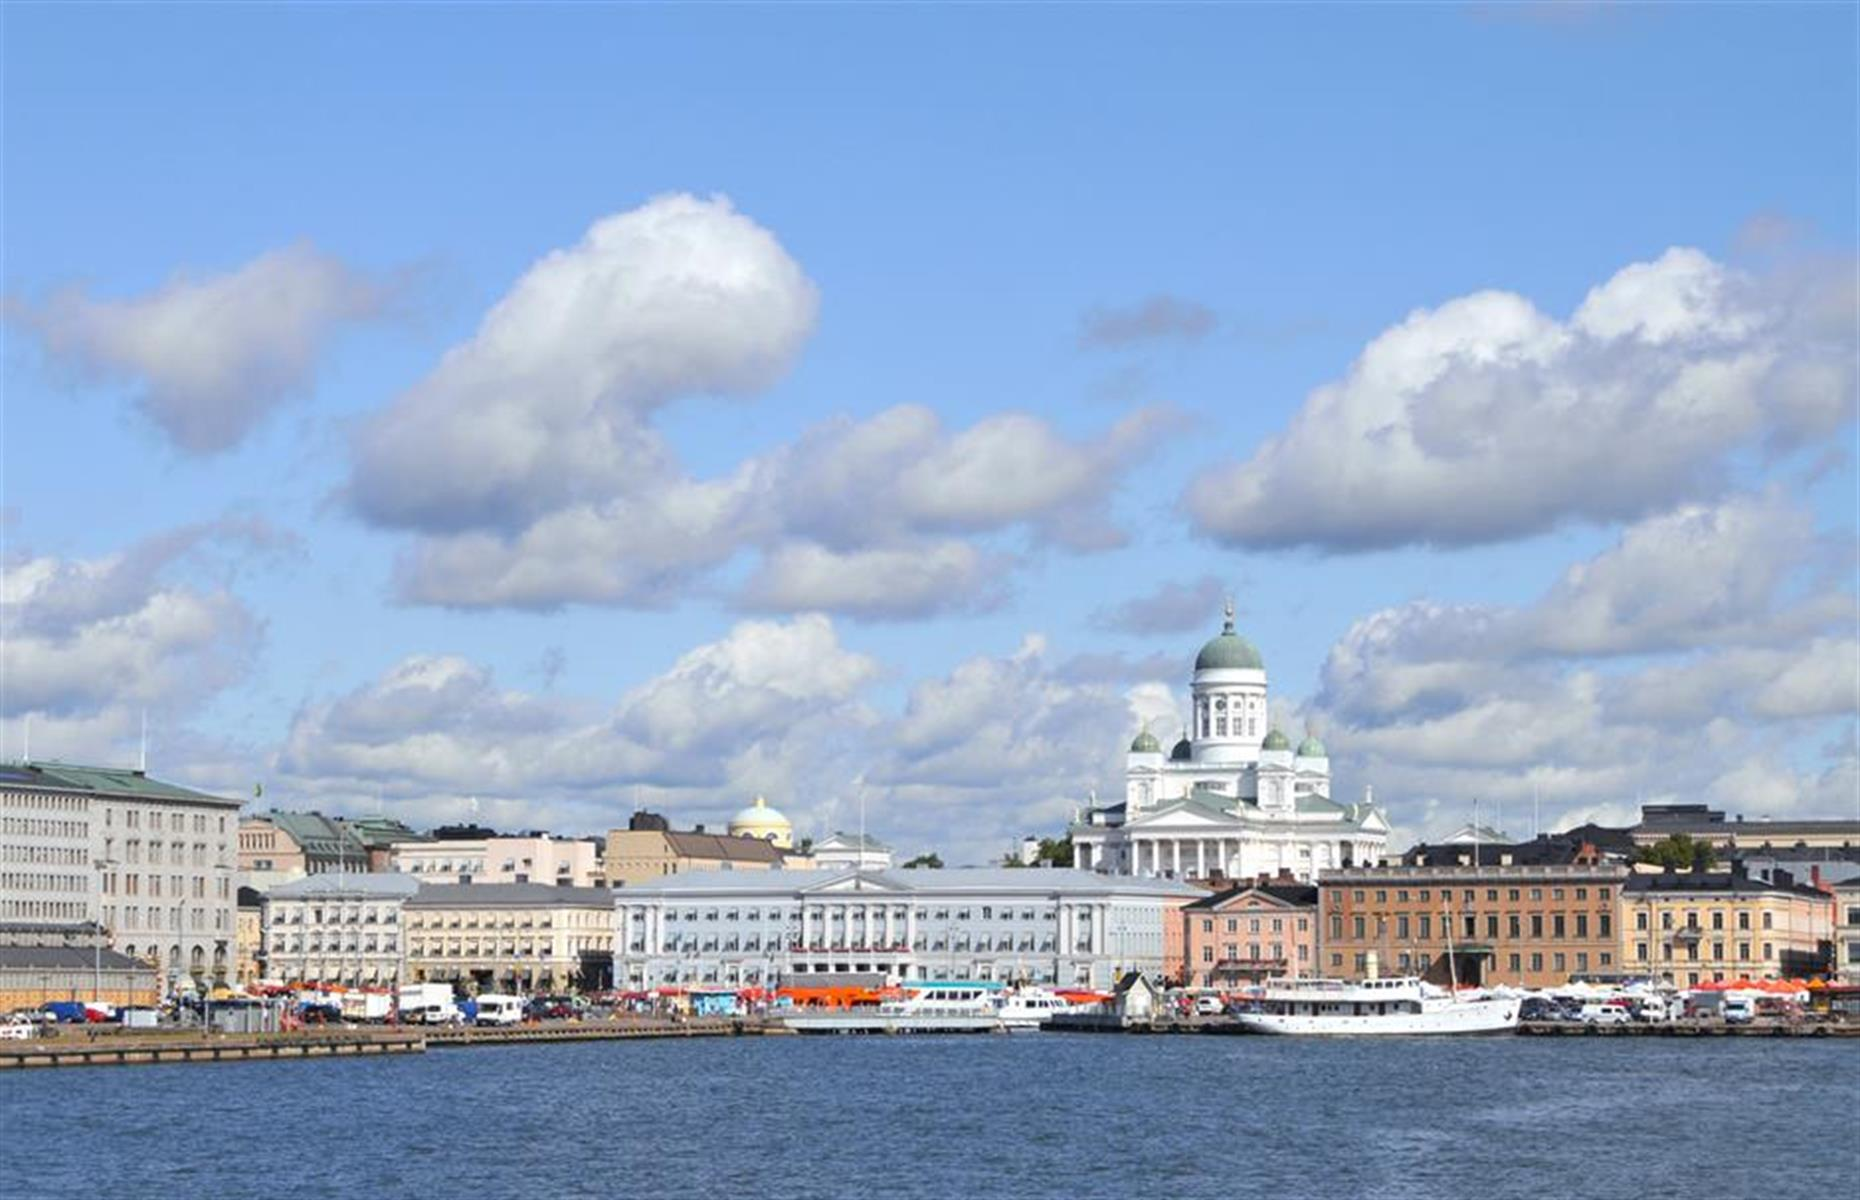 Slide 14 of 28: In the early 2010s, plans were in full swing to build a Guggenheim museum in the Finnish capital. The prestigious art museum would have been situated on Helsinki's South Harbour, Eteläsatama (pictured), and the building's design was to be decided by an international competition. The uber-modern winning design by Parisian firm Moreau Kusunoki Architects included a series of vast timber-clad buildings and a teetering tower with views over the water.